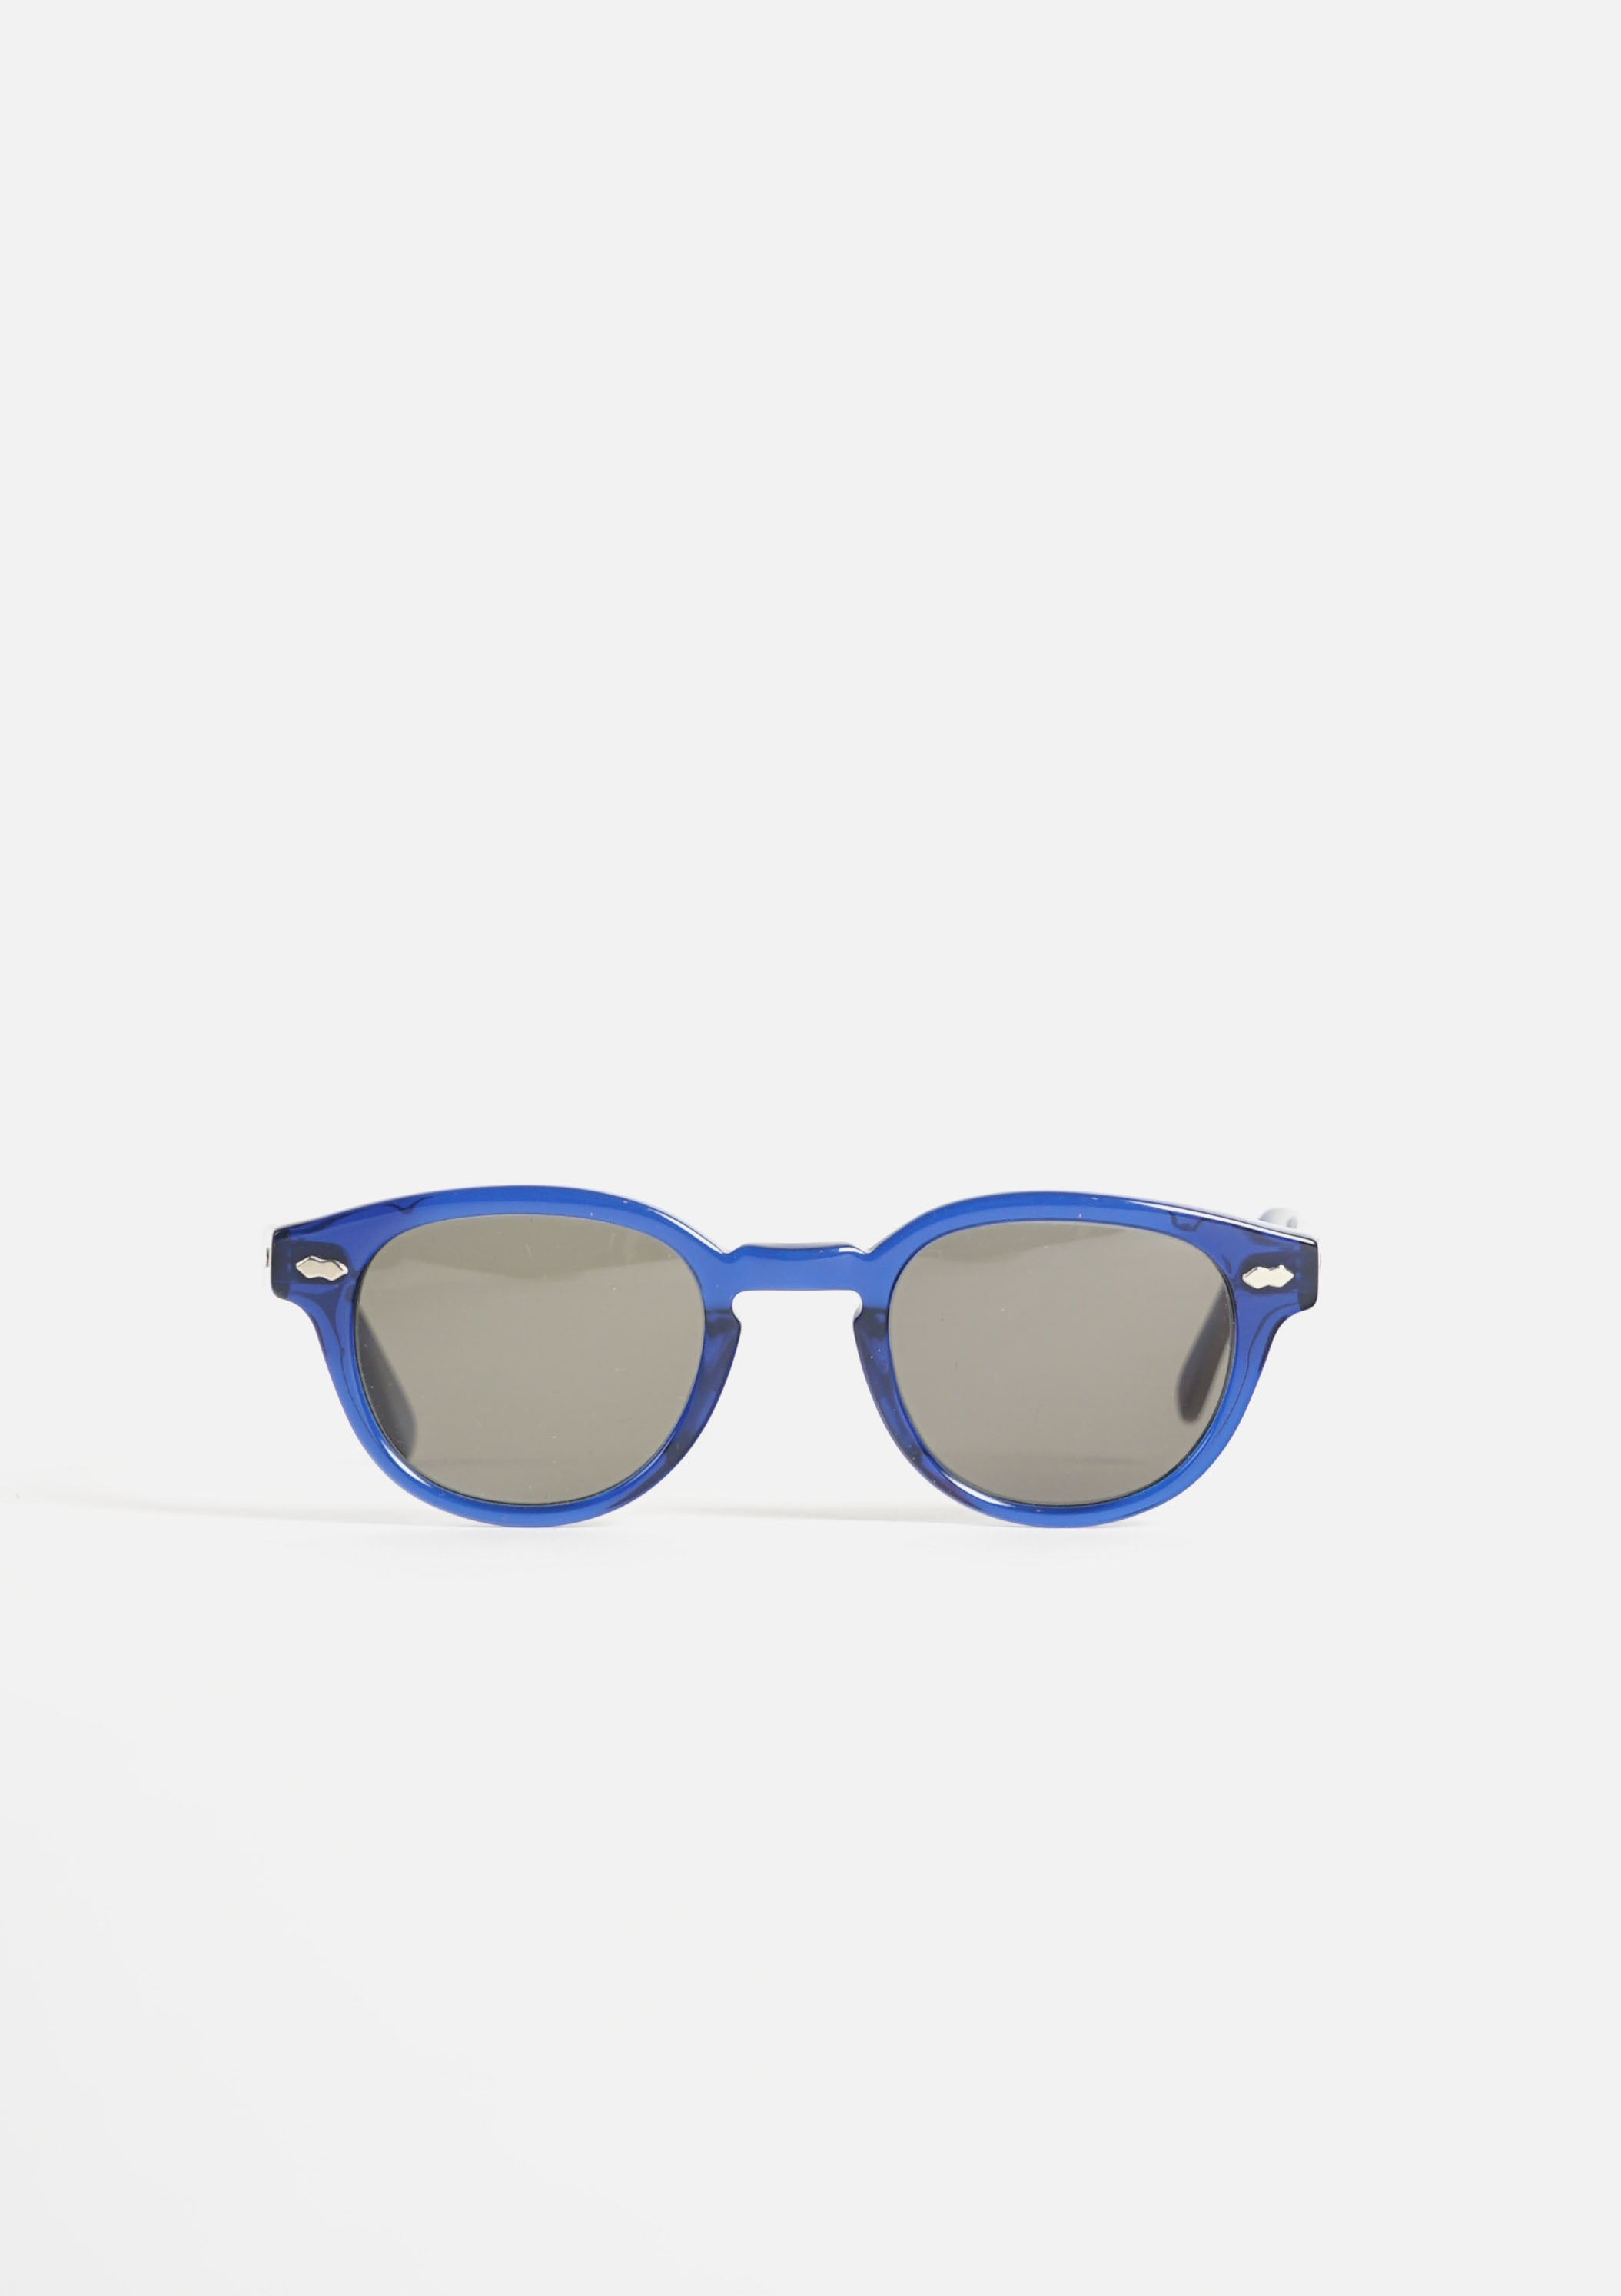 MODEL 511 Sunglasses  Blue